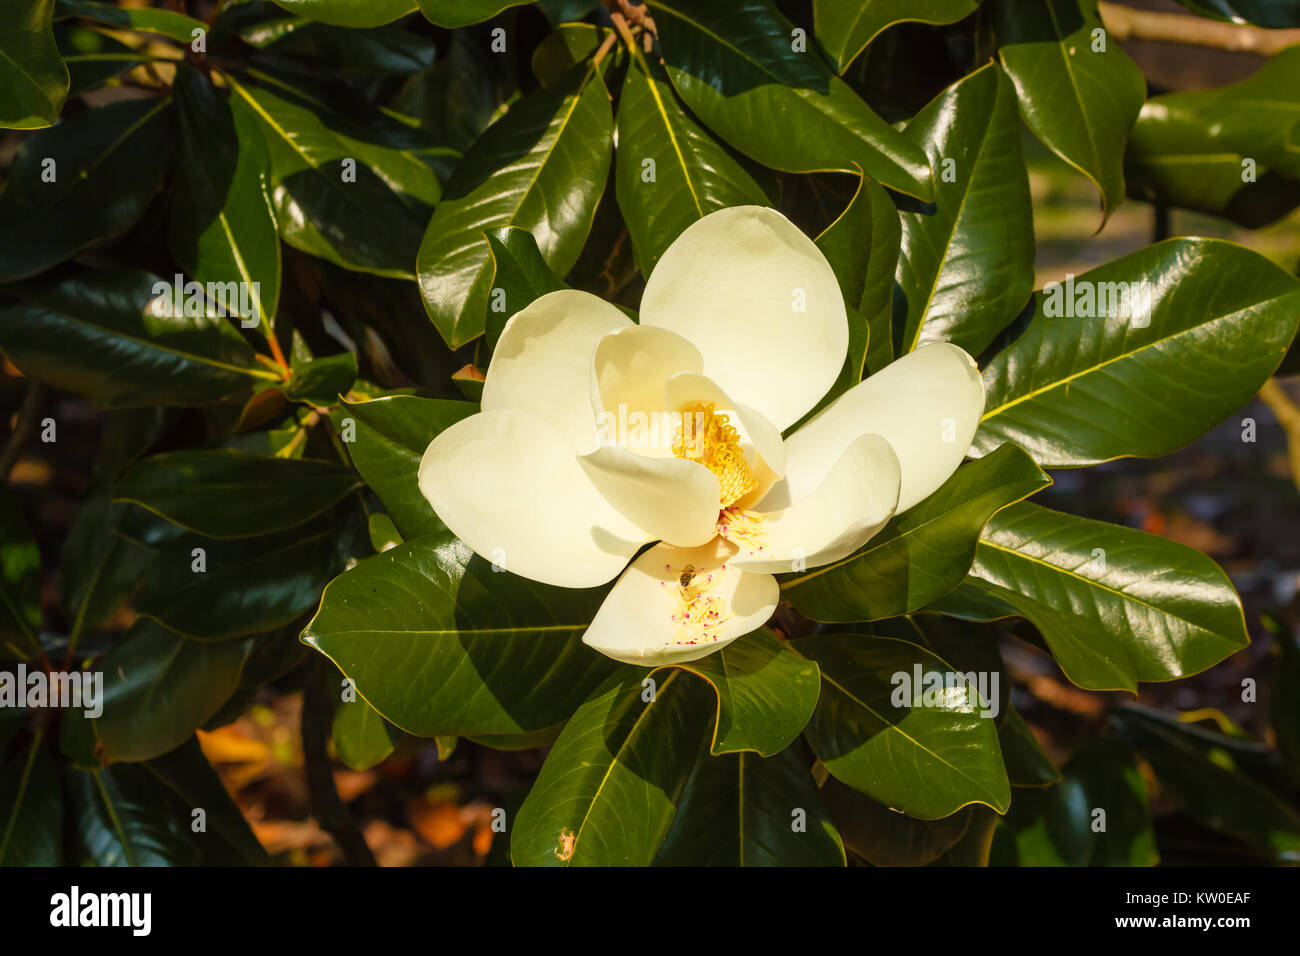 The magnolia grandiflora is an ornamental tree with large and shiny the magnolia grandiflora is an ornamental tree with large and shiny leaves and white fleshy and scented flowers mightylinksfo